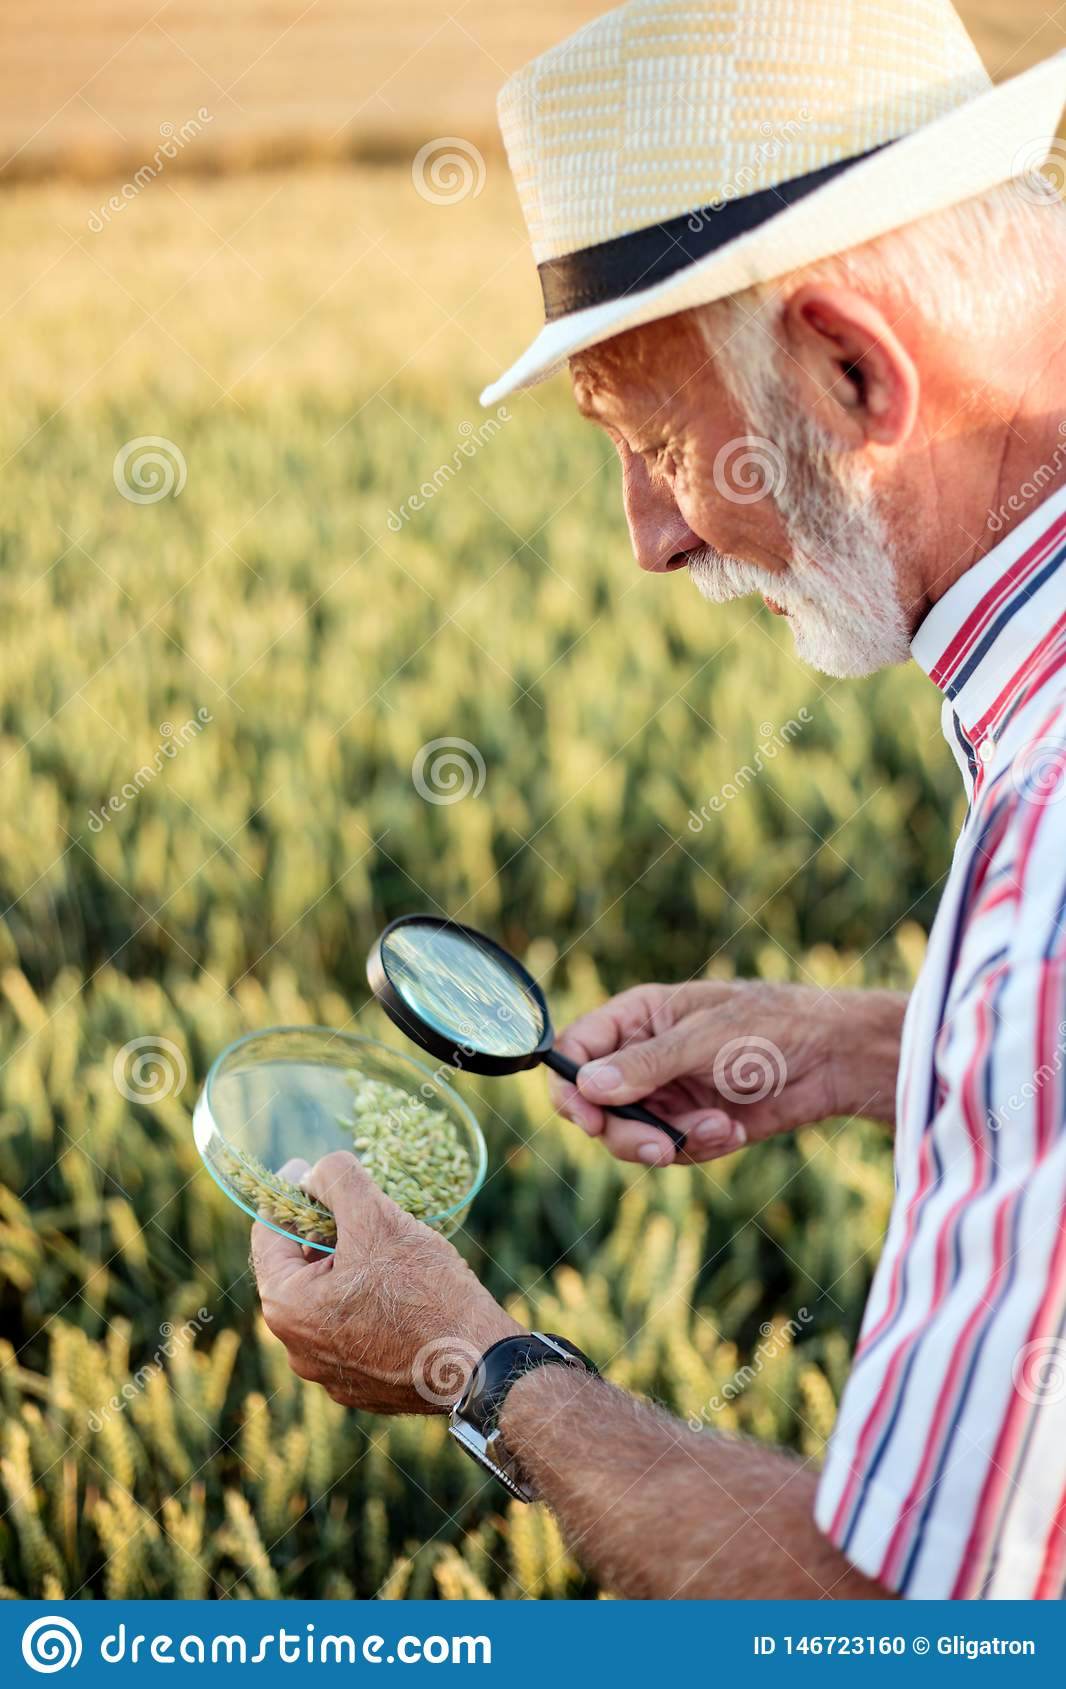 Senior agronomist or farmer examining wheat seeds under the magnifying glass in the field, looking for aphid or other parasites